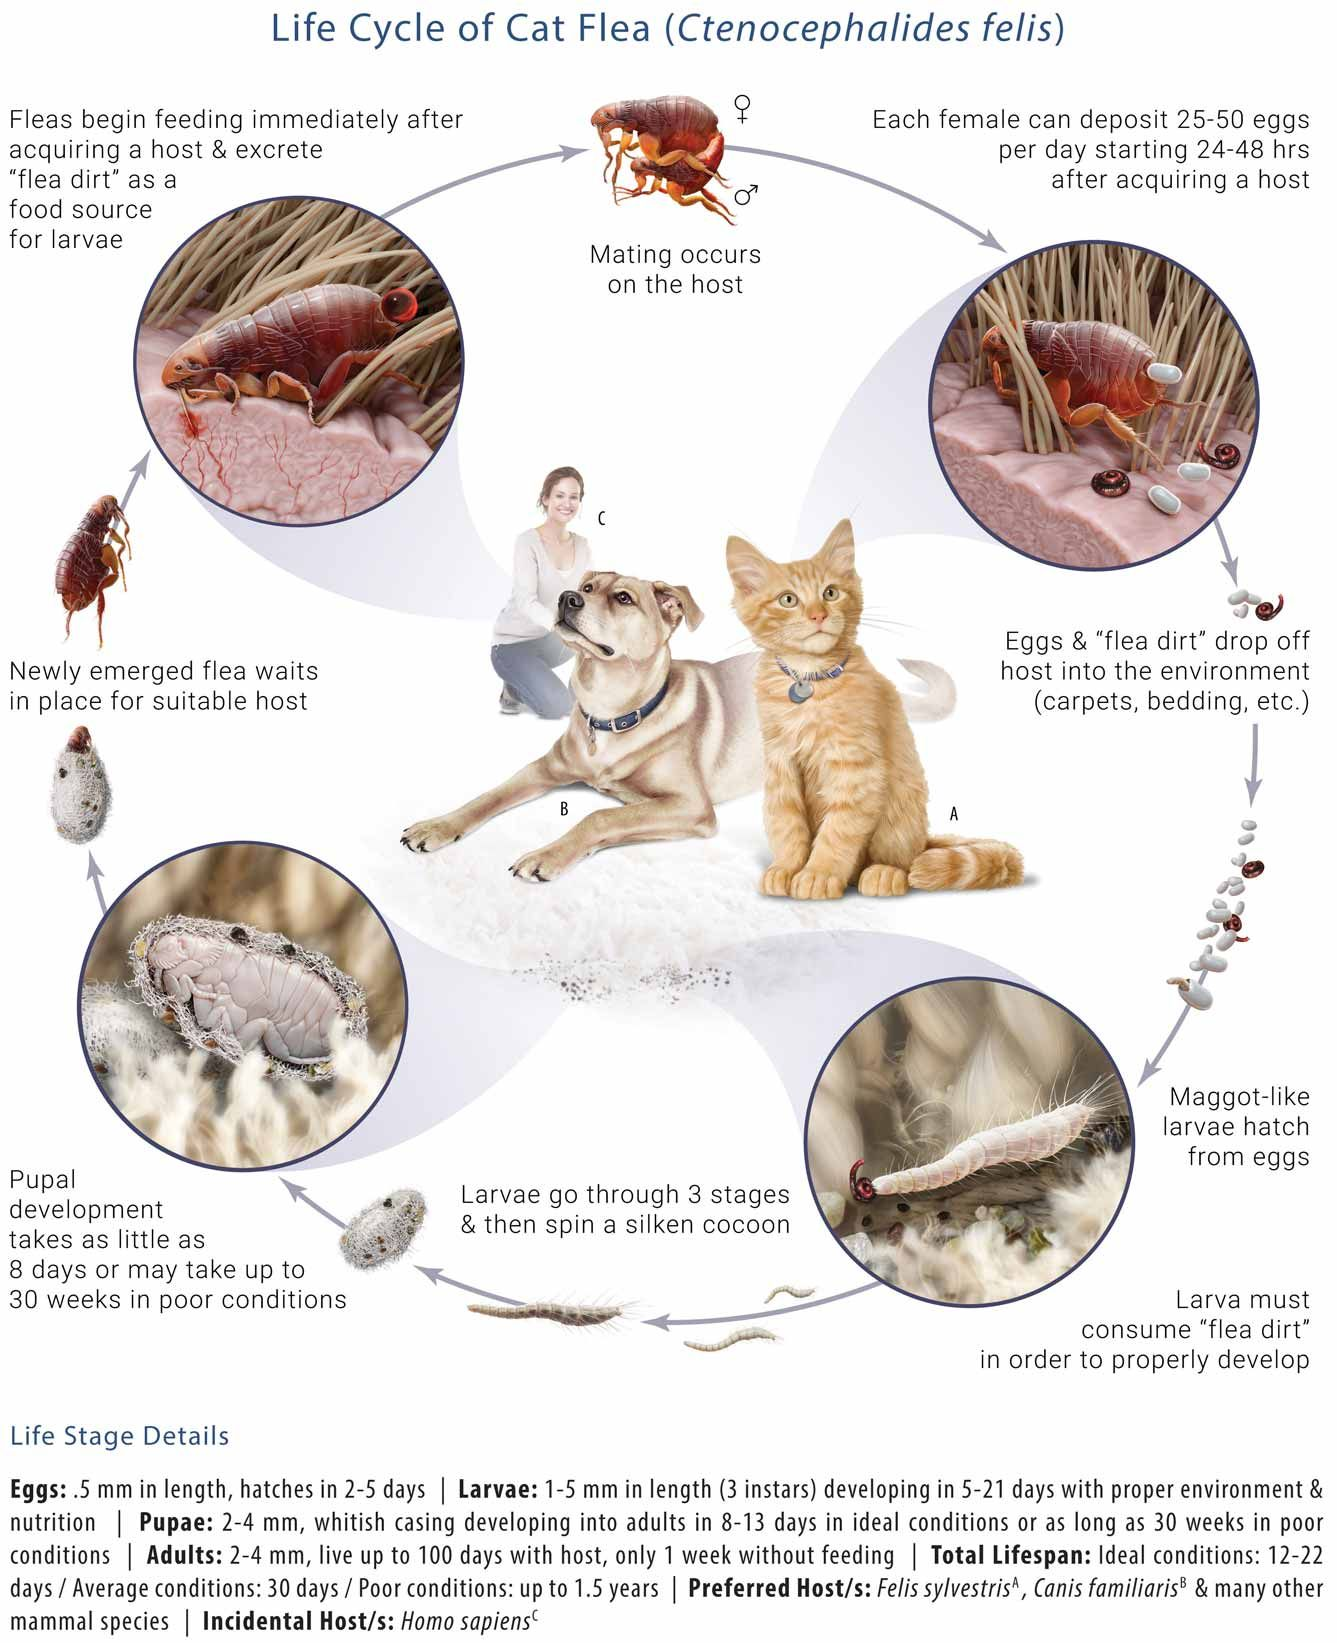 Life Cycle of a Cat Flea. Fleas begin feeding immediately